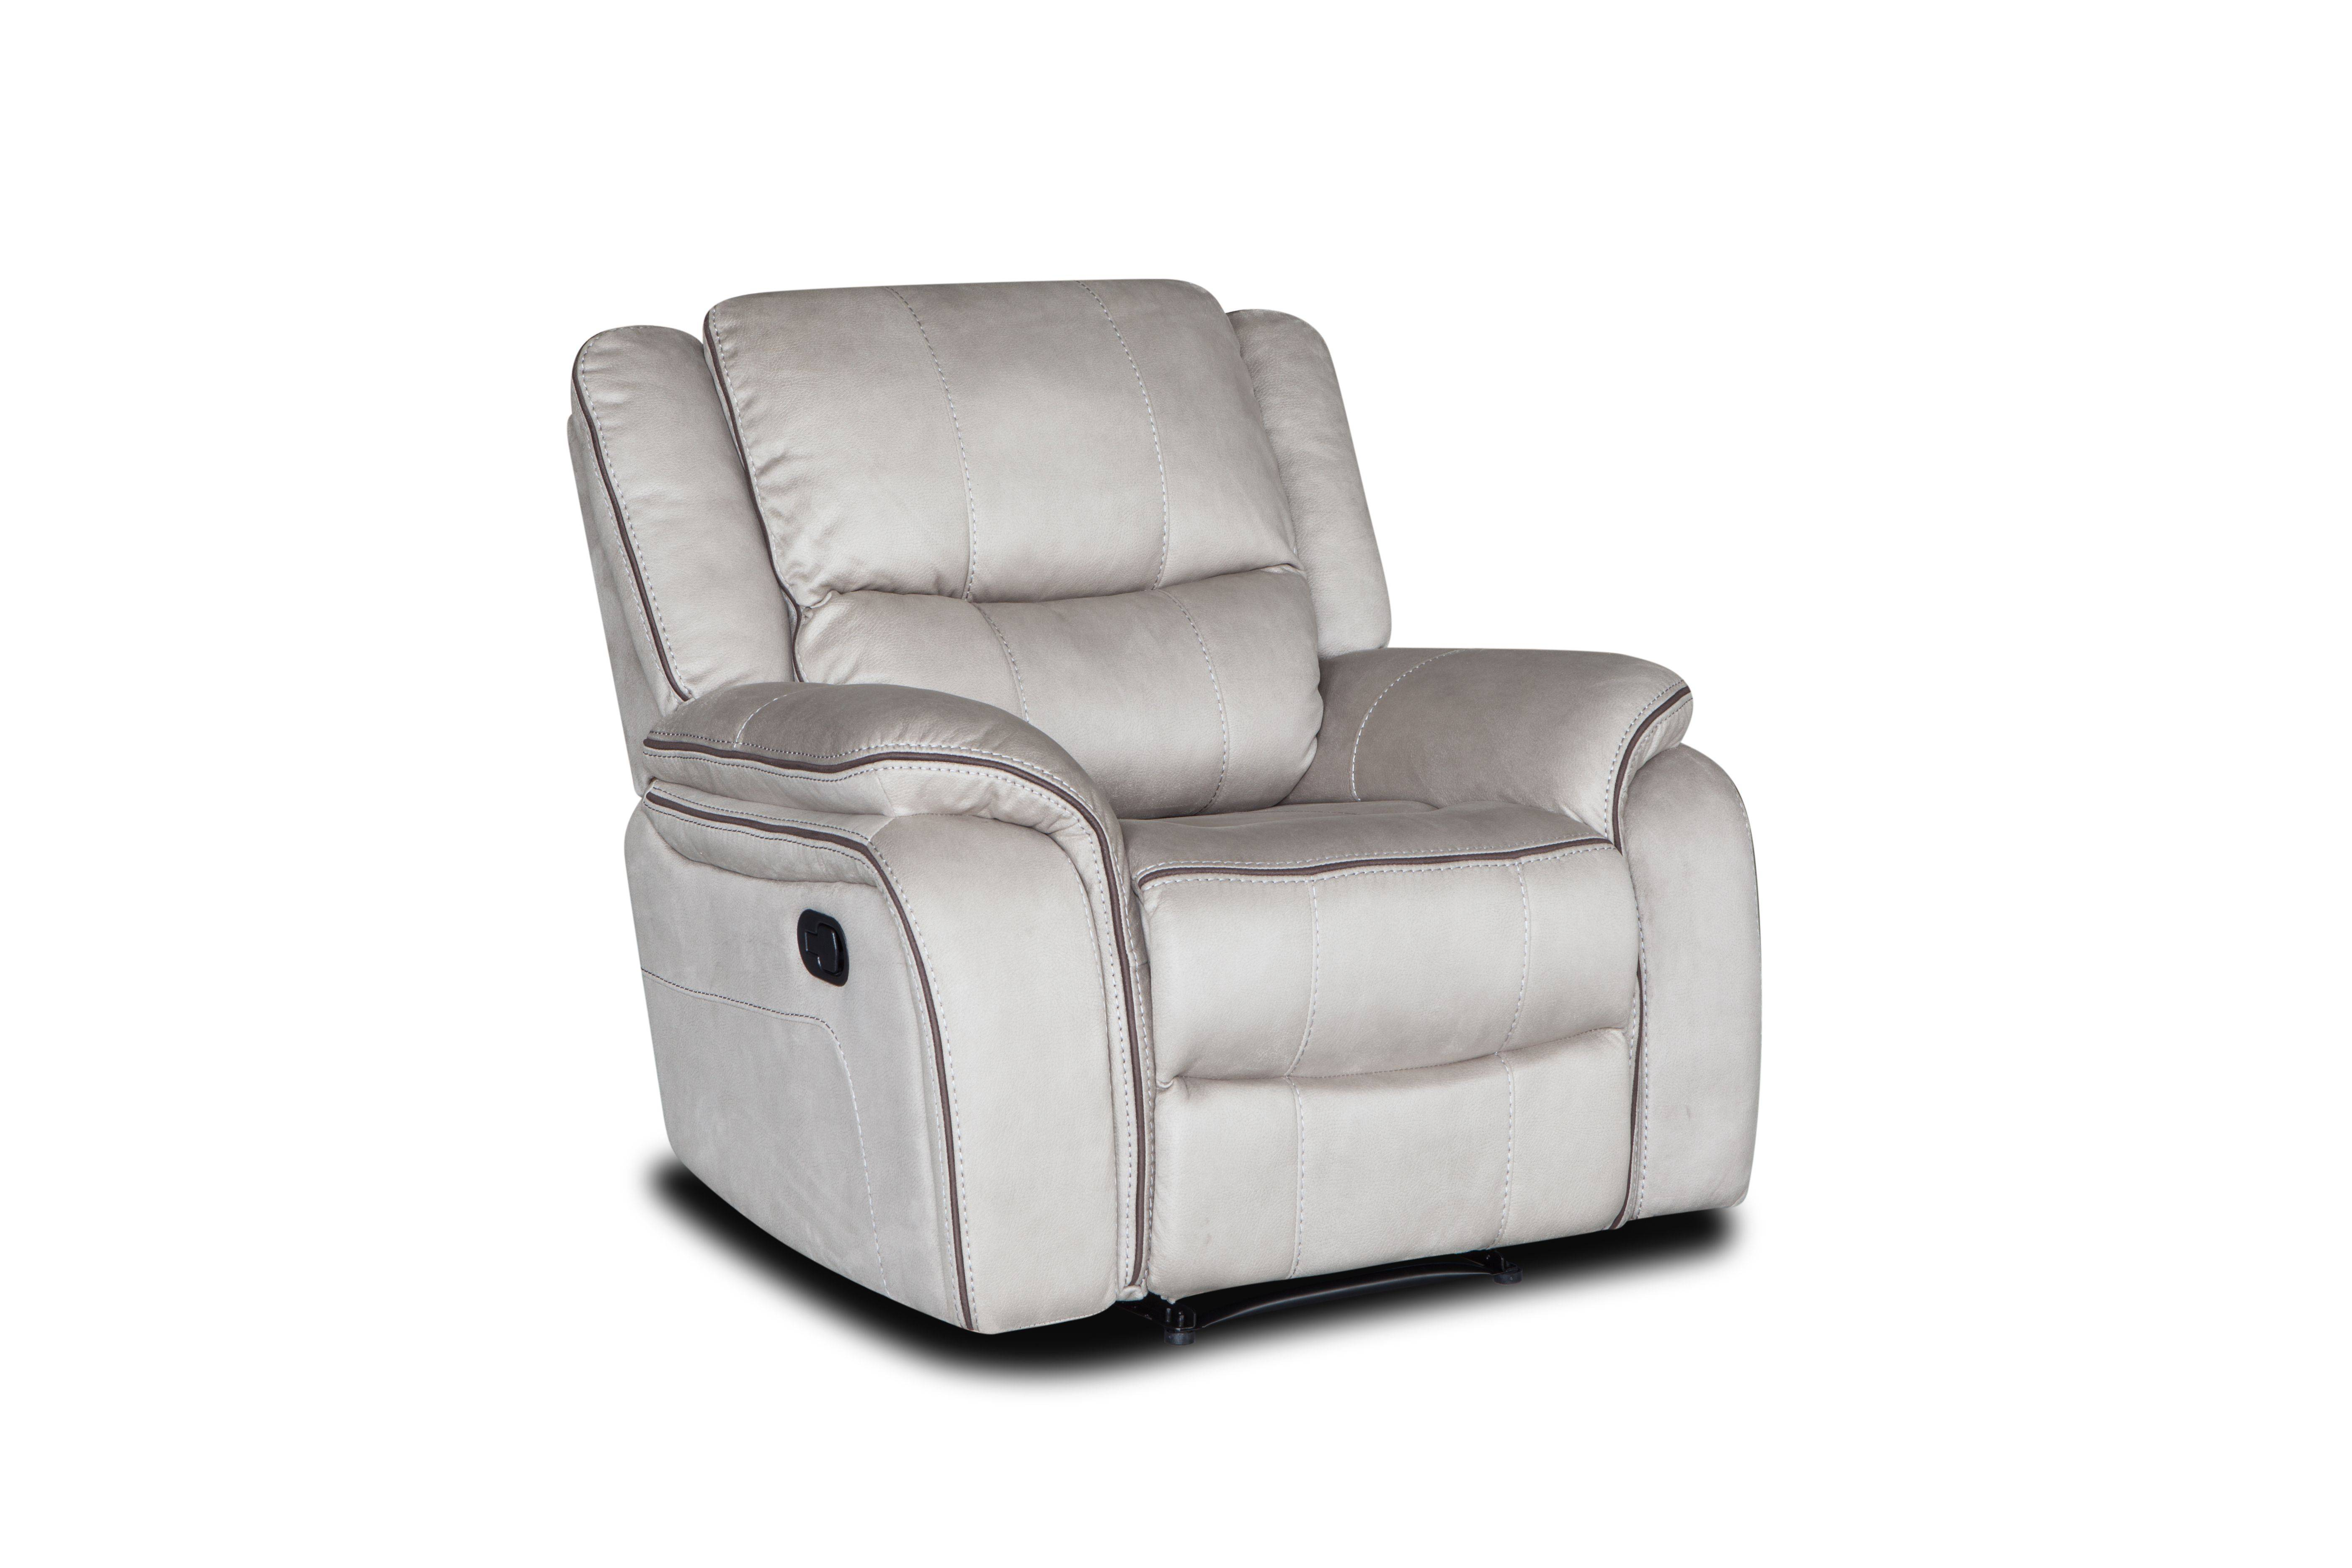 China genuine leather 3 seater comfortable recliner sofa set